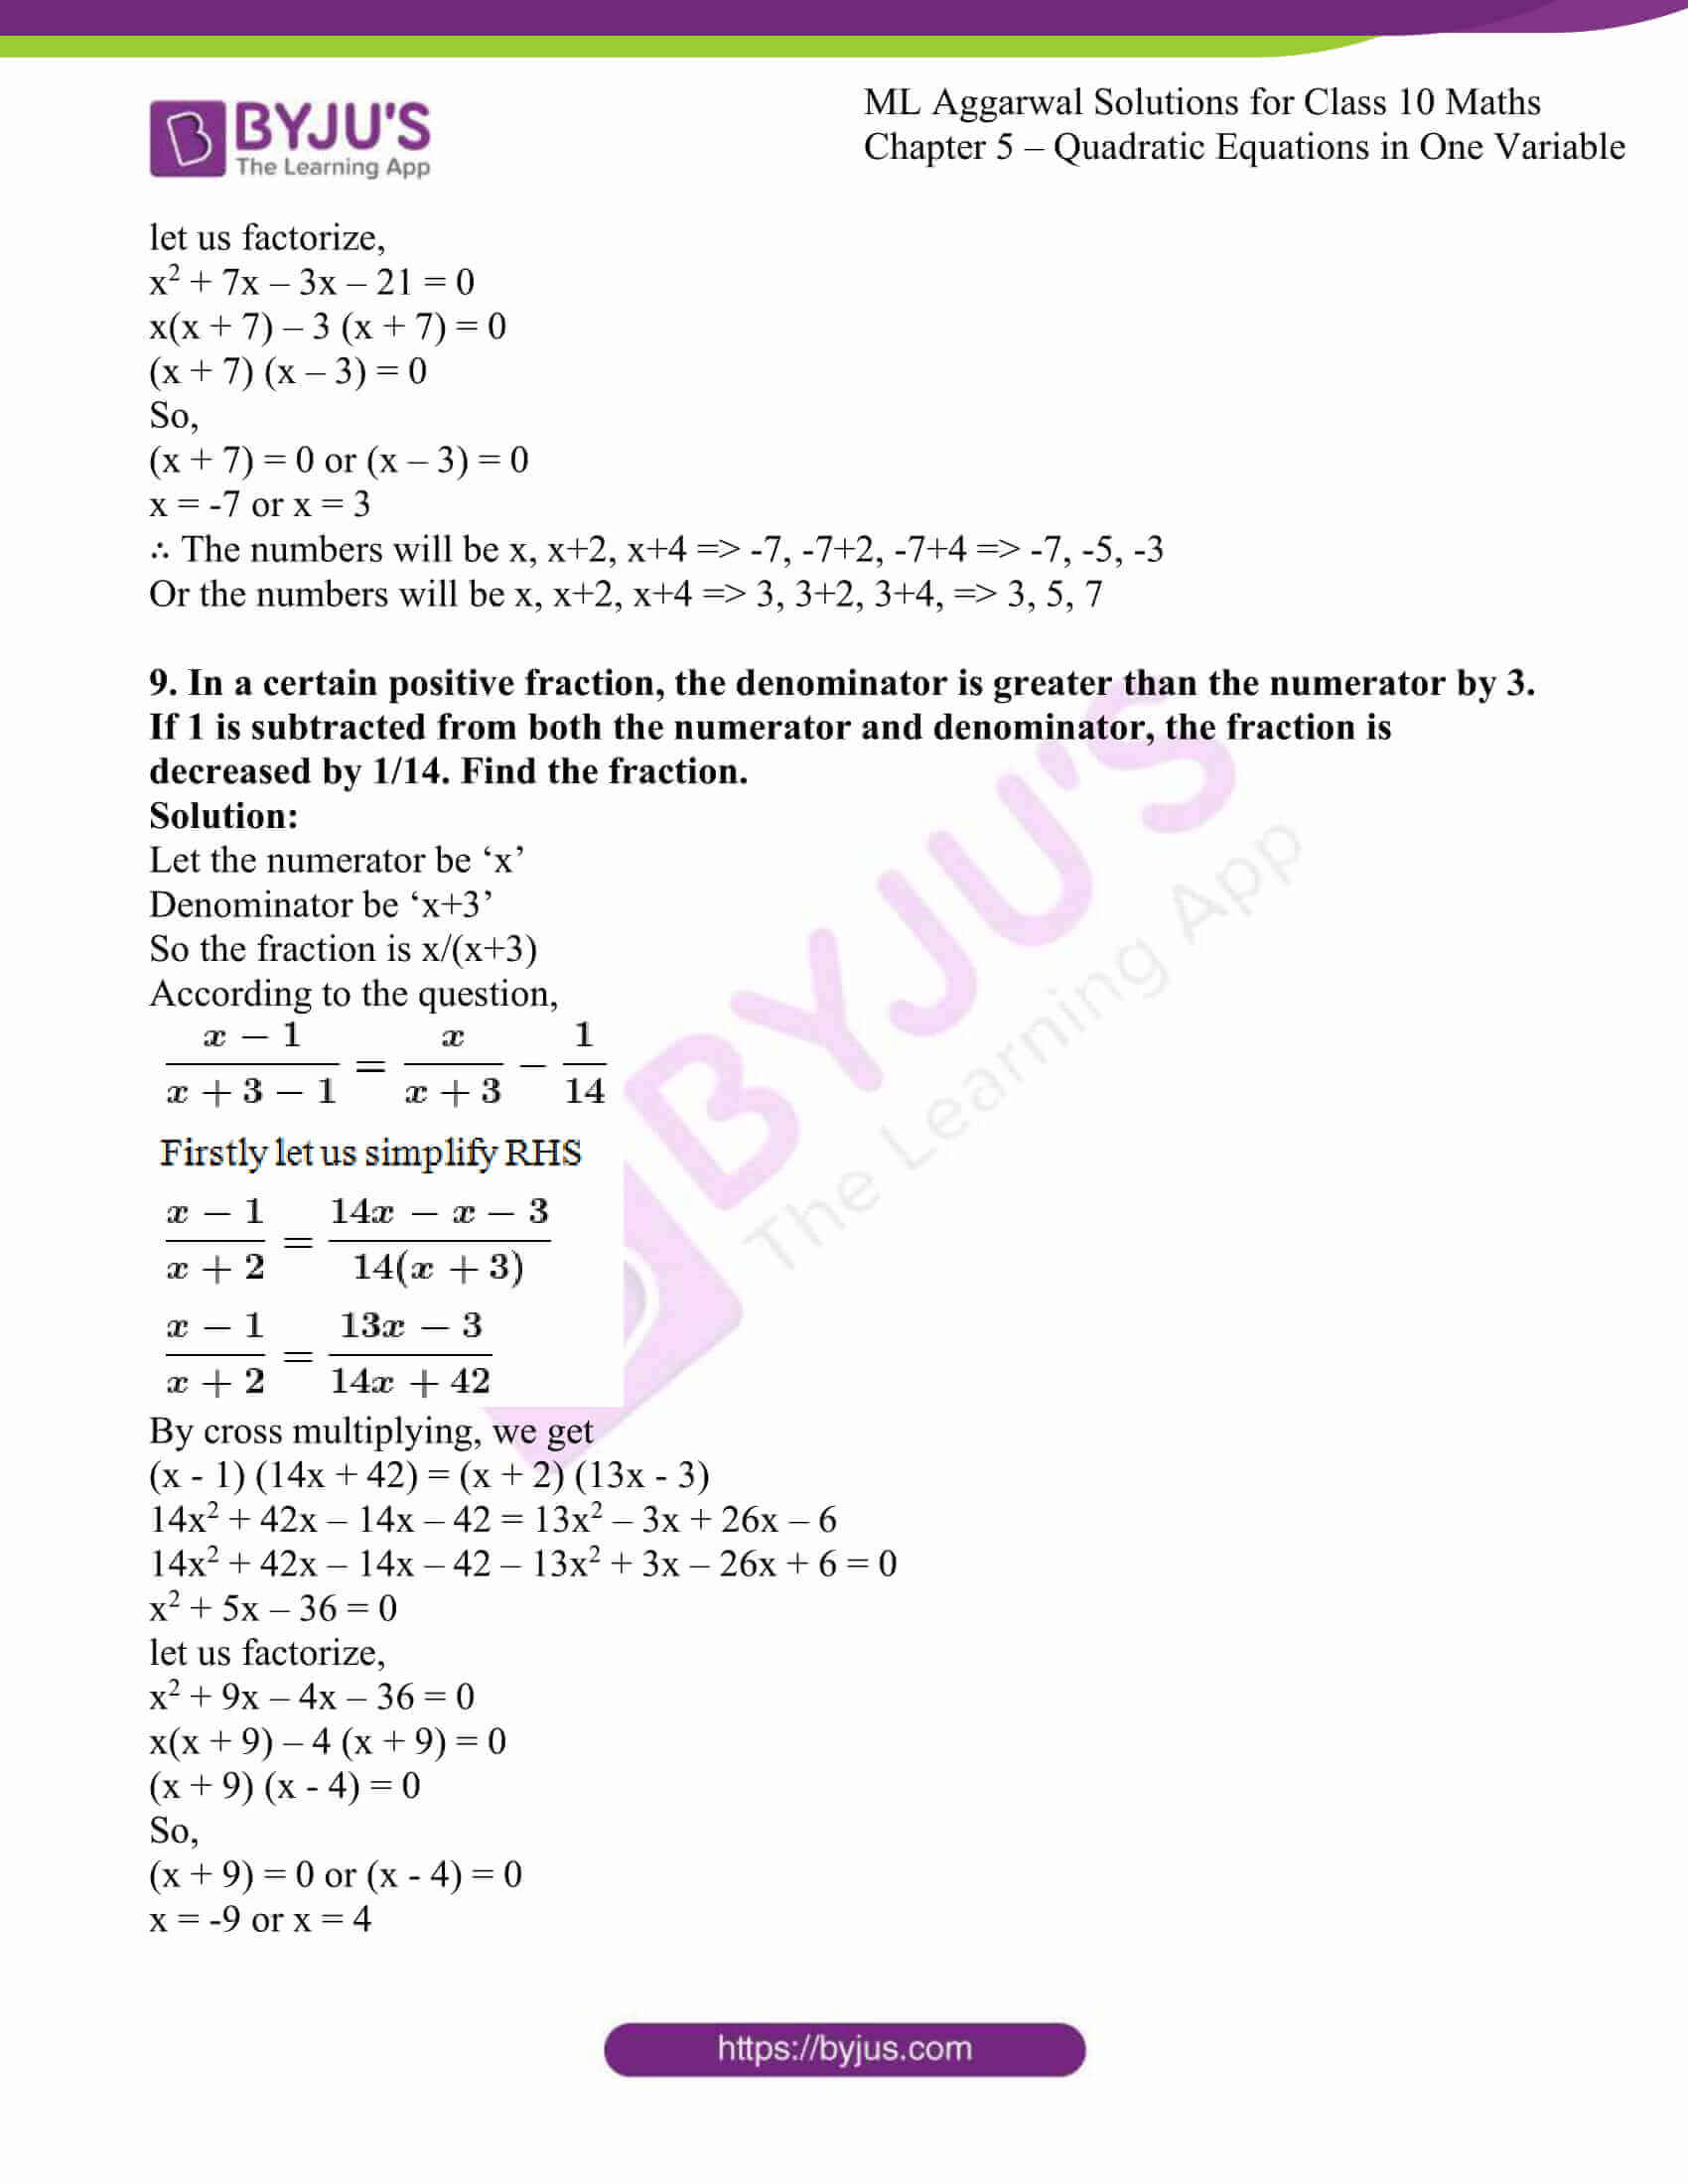 ml aggarwal solutions class 10 maths chapter 5 58